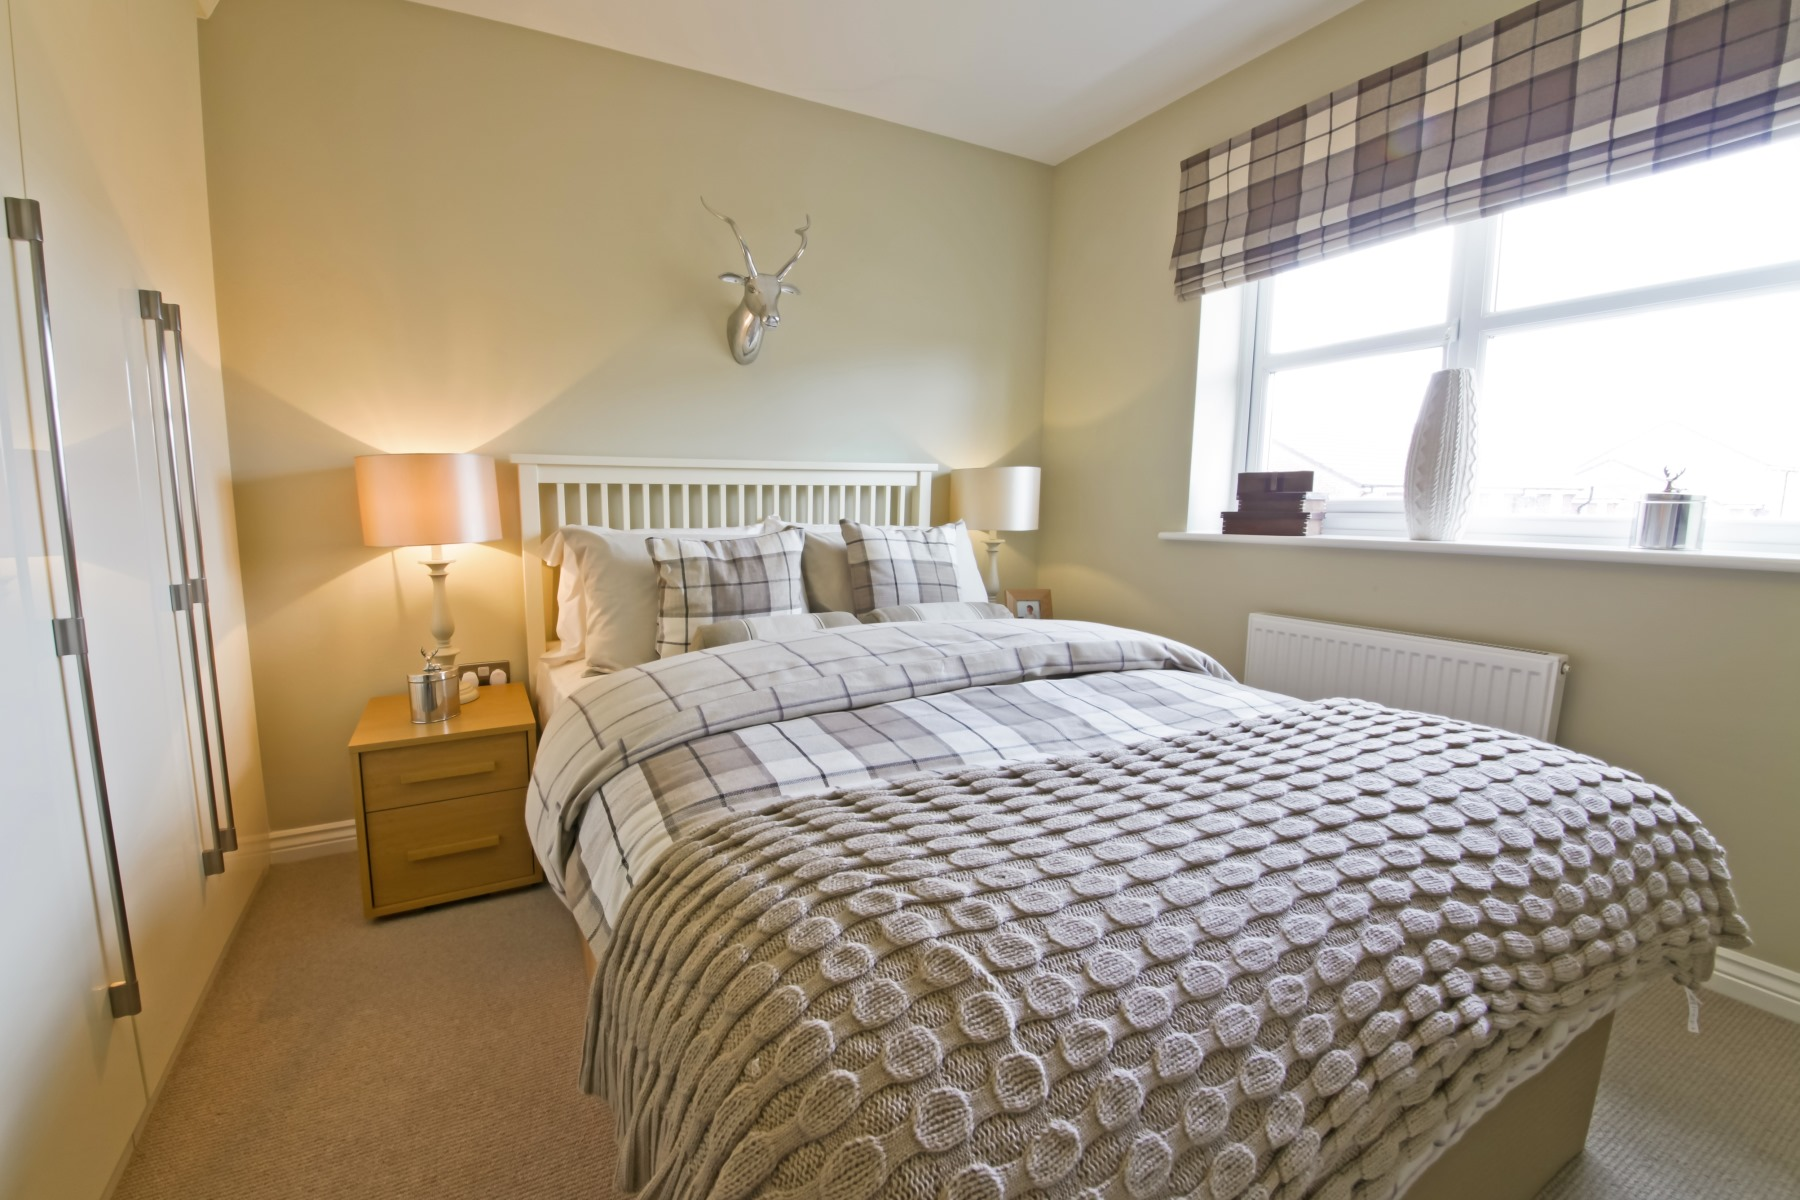 The Patterdale At Bramley Wood Taylor Wimpey